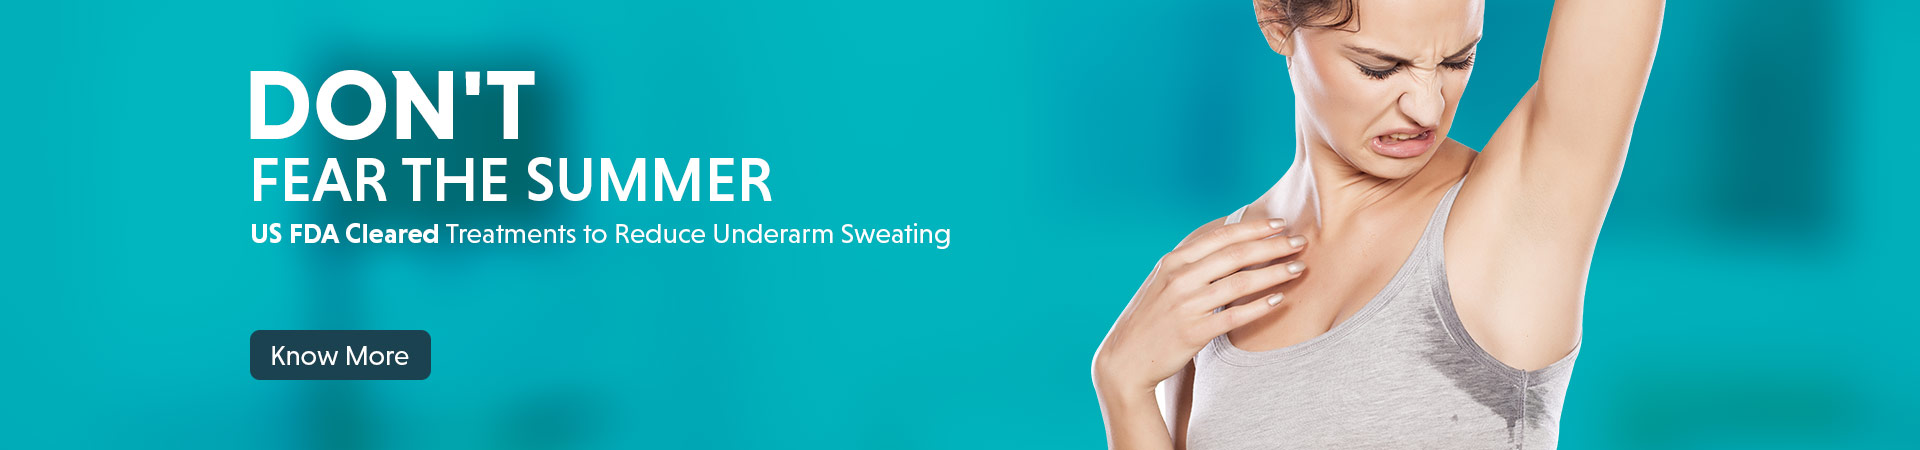 cure for underarm sweat and odor